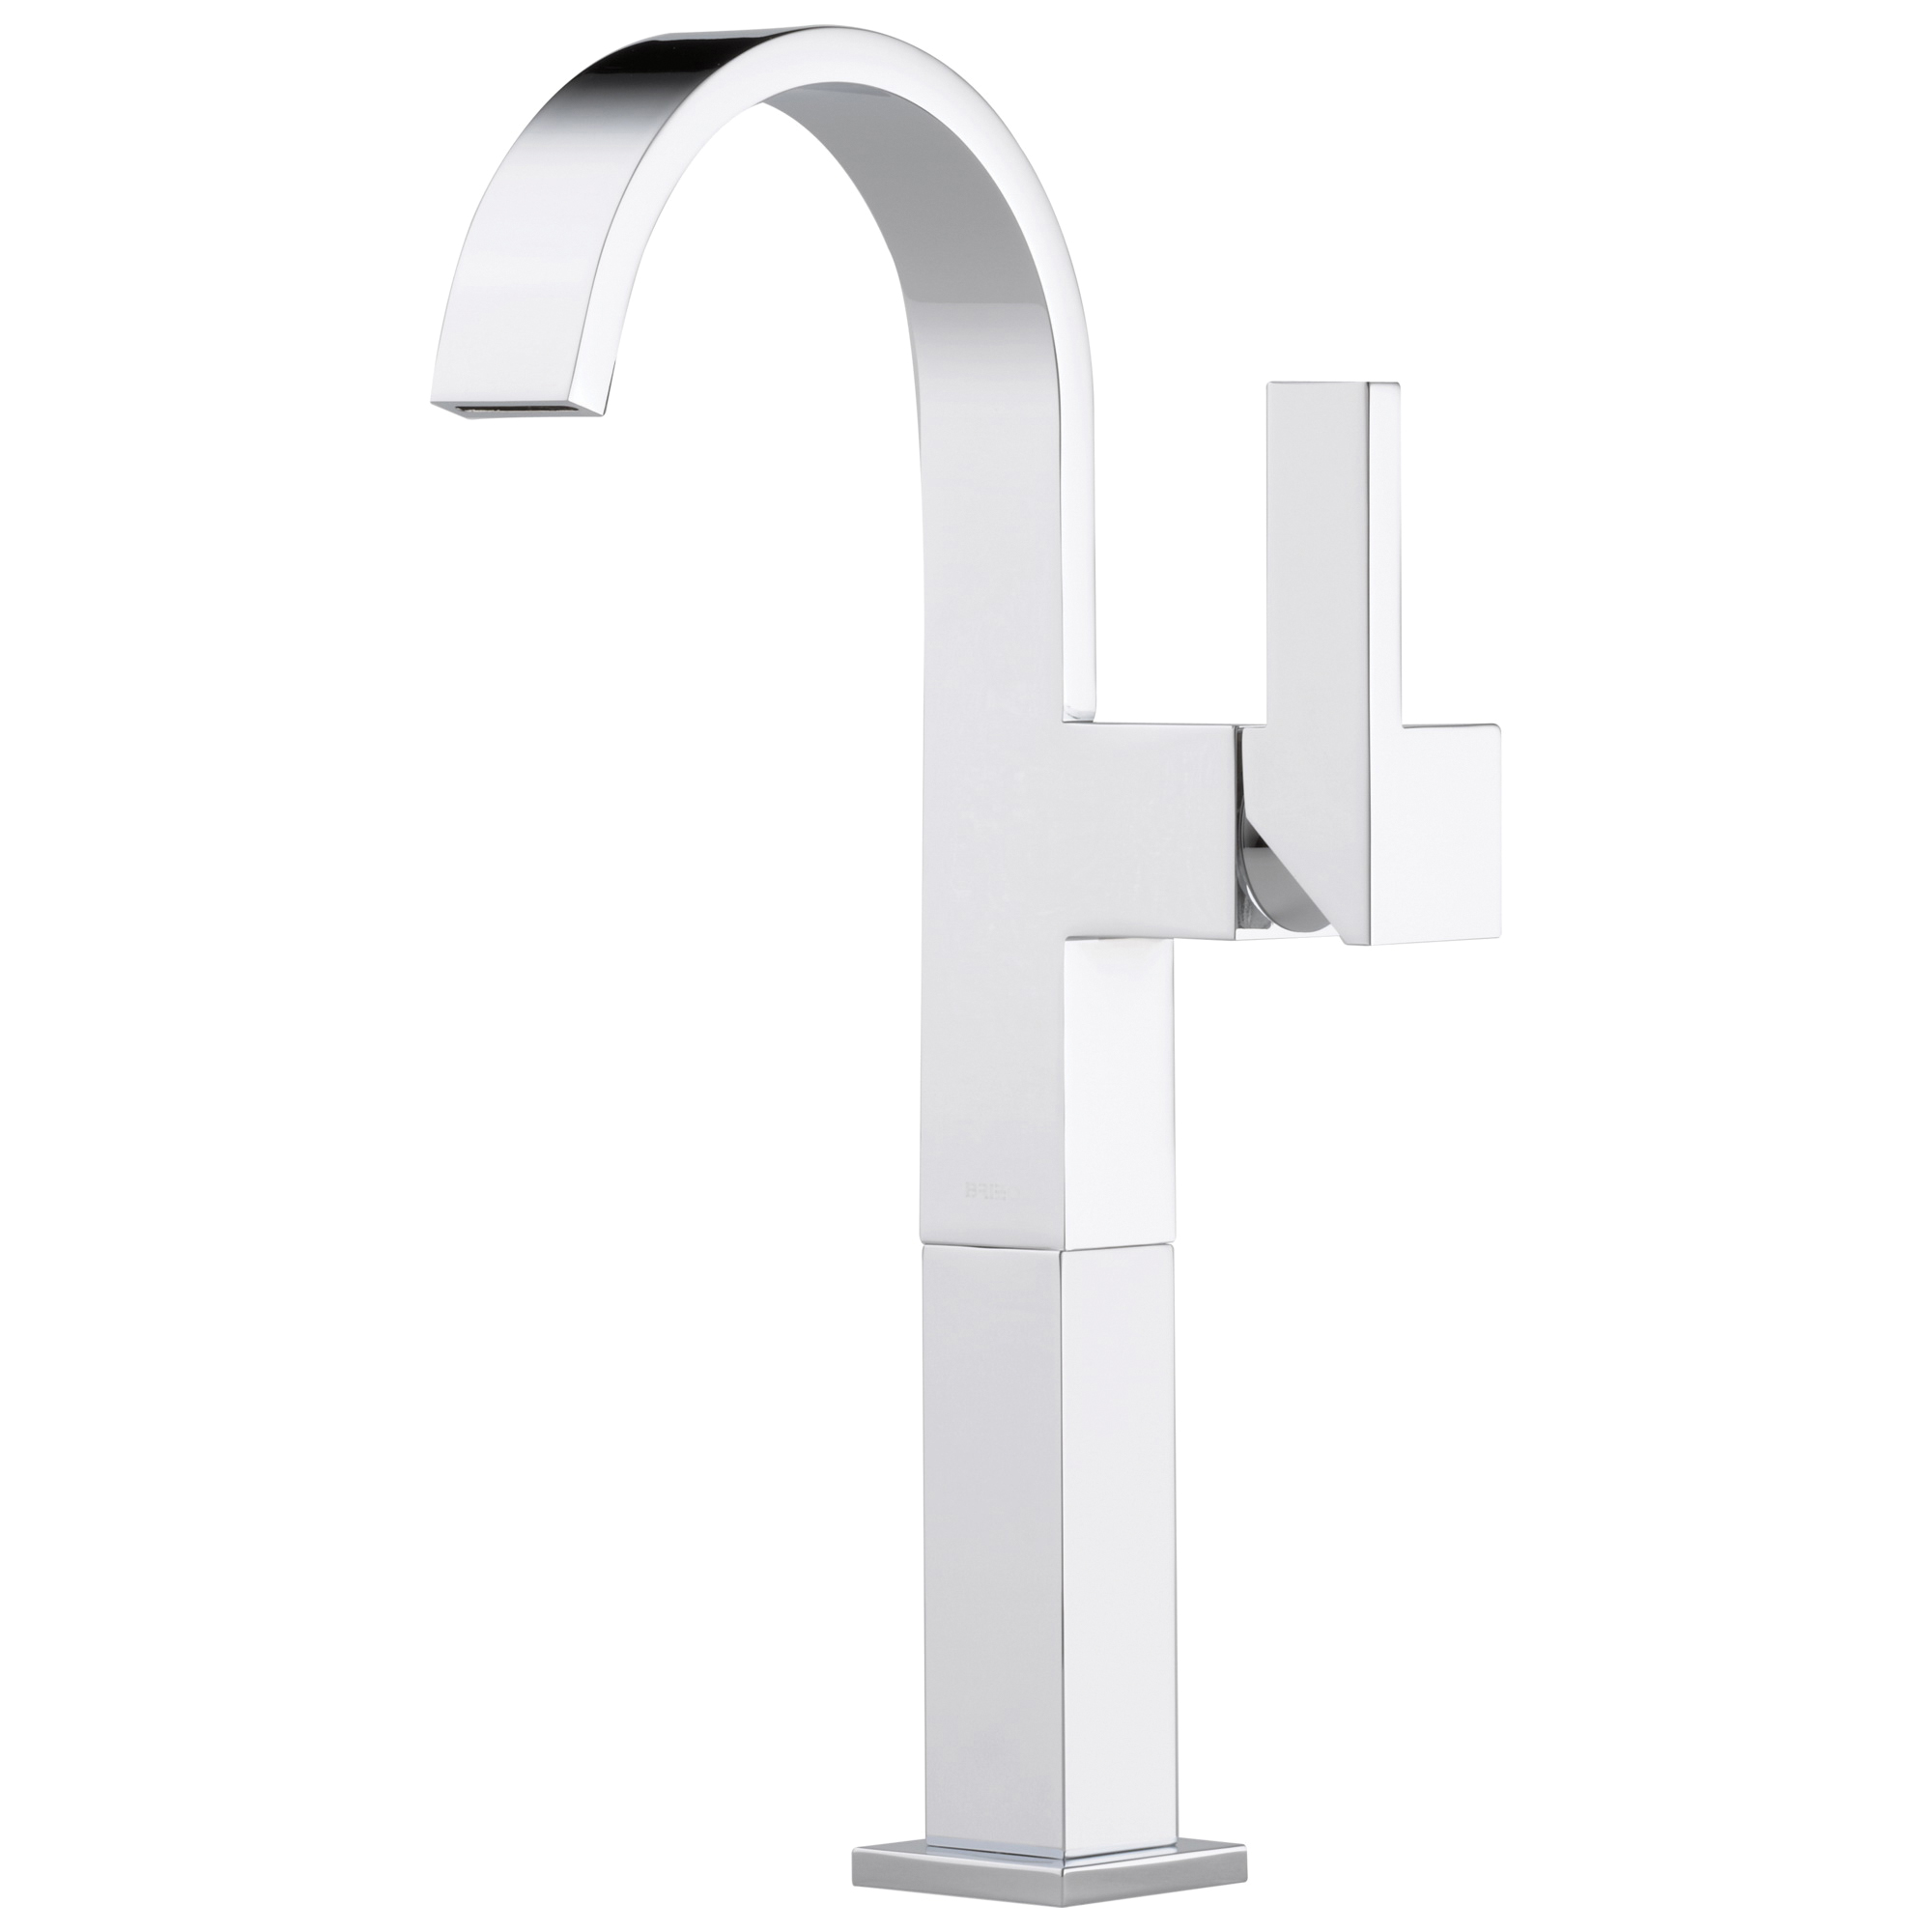 Brizo® 65480LF-PC Siderna® Vessel Lavatory Faucet, 1.5 gpm, 9-5/8 in H Spout, Polished Chrome, 1 Handles, Import, Commercial